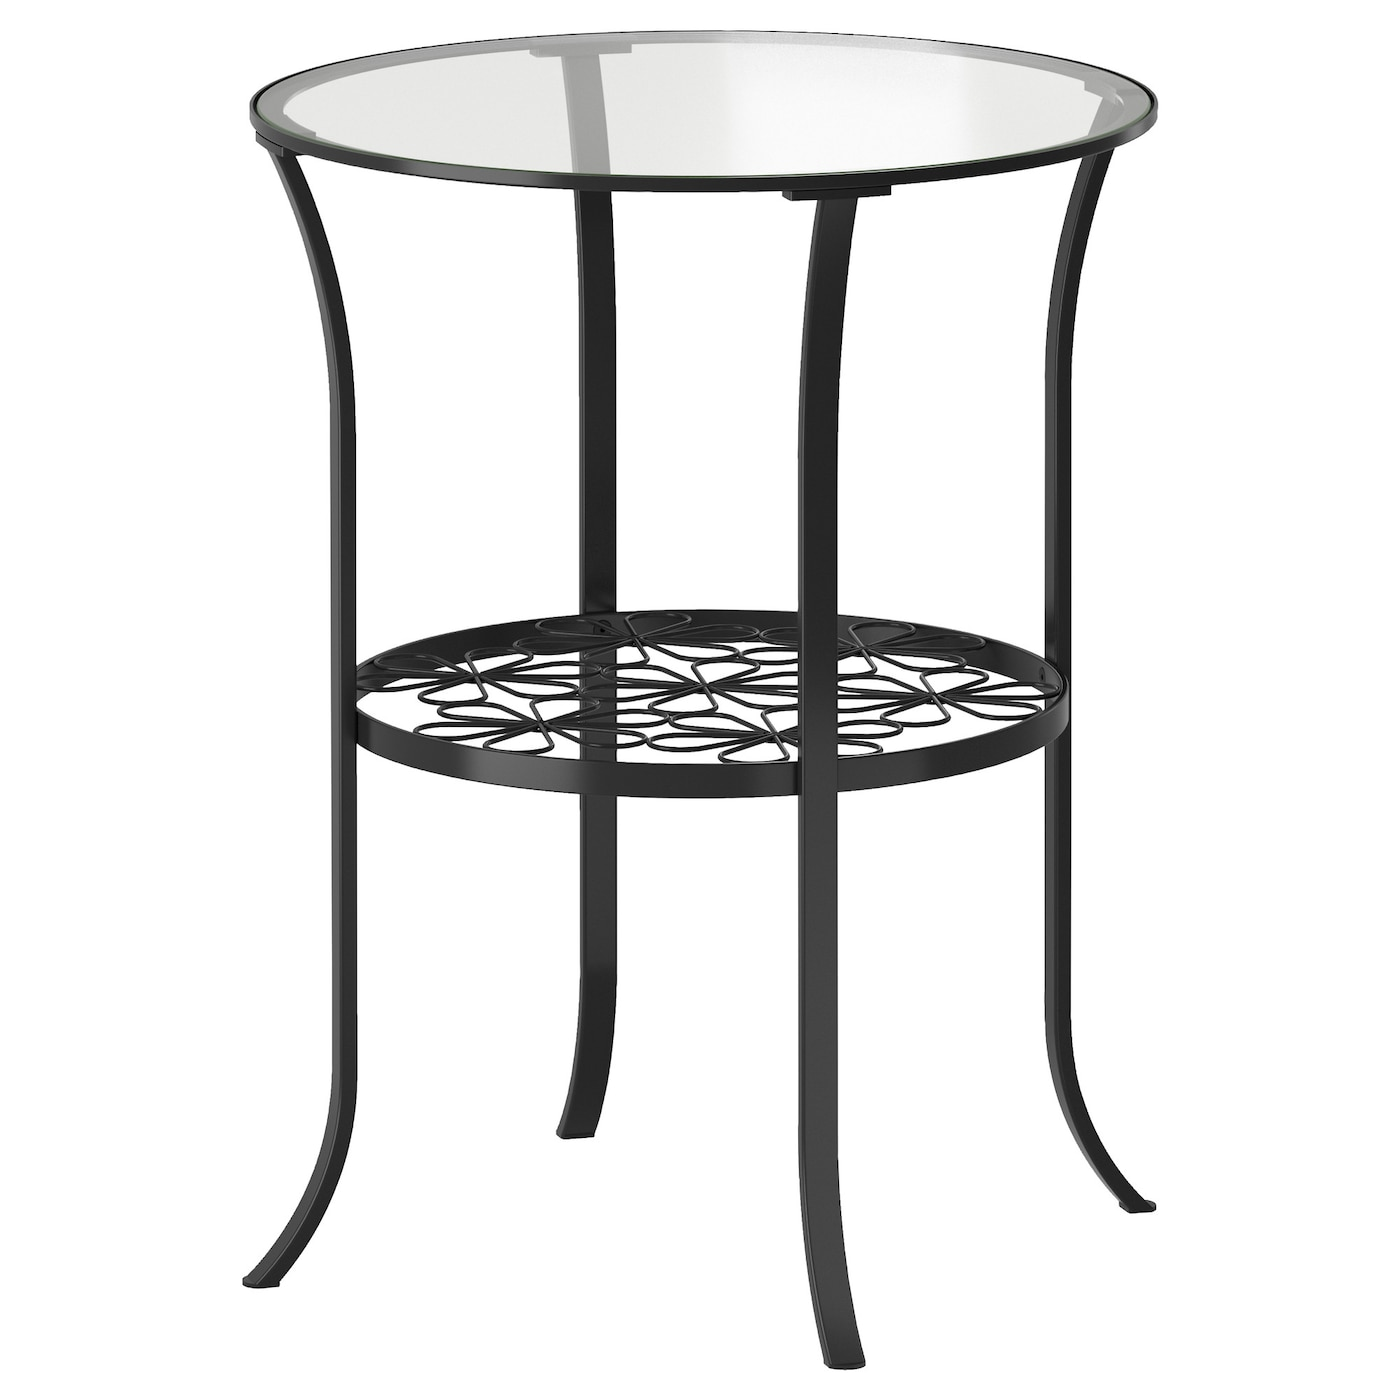 klingsbo side table black clear glass 49x60 cm ikea. Black Bedroom Furniture Sets. Home Design Ideas